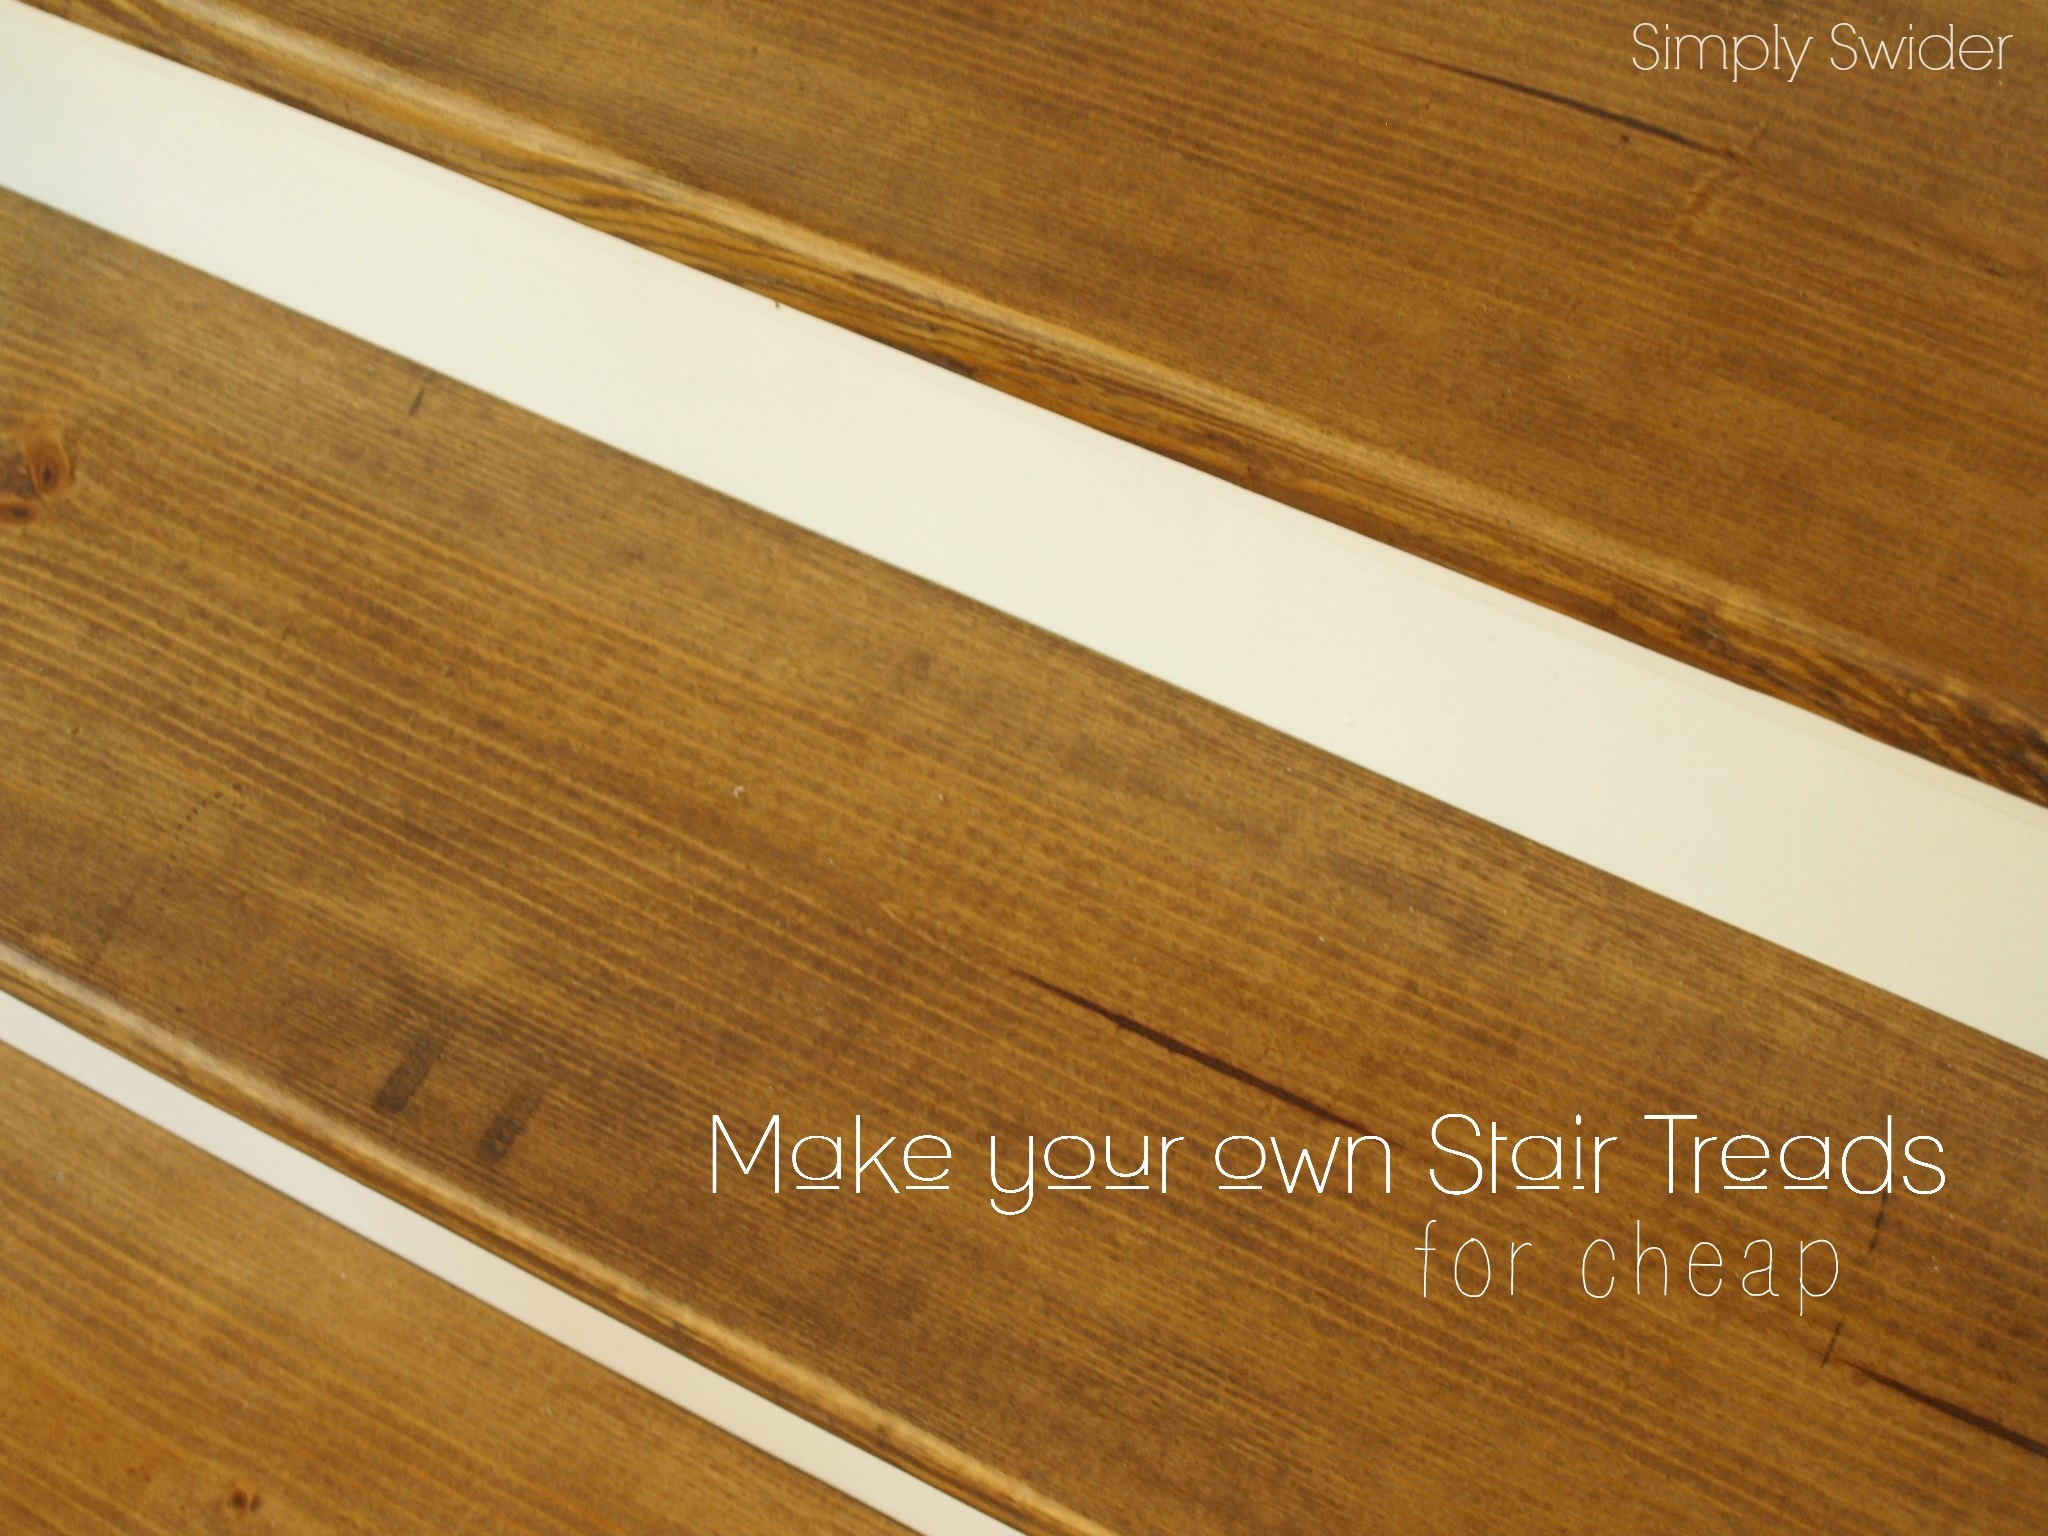 How To Make Wood Stairs Treads For Cheap Simply Swider Intended For Stair Treads For Wooden Stairs (#10 of 20)